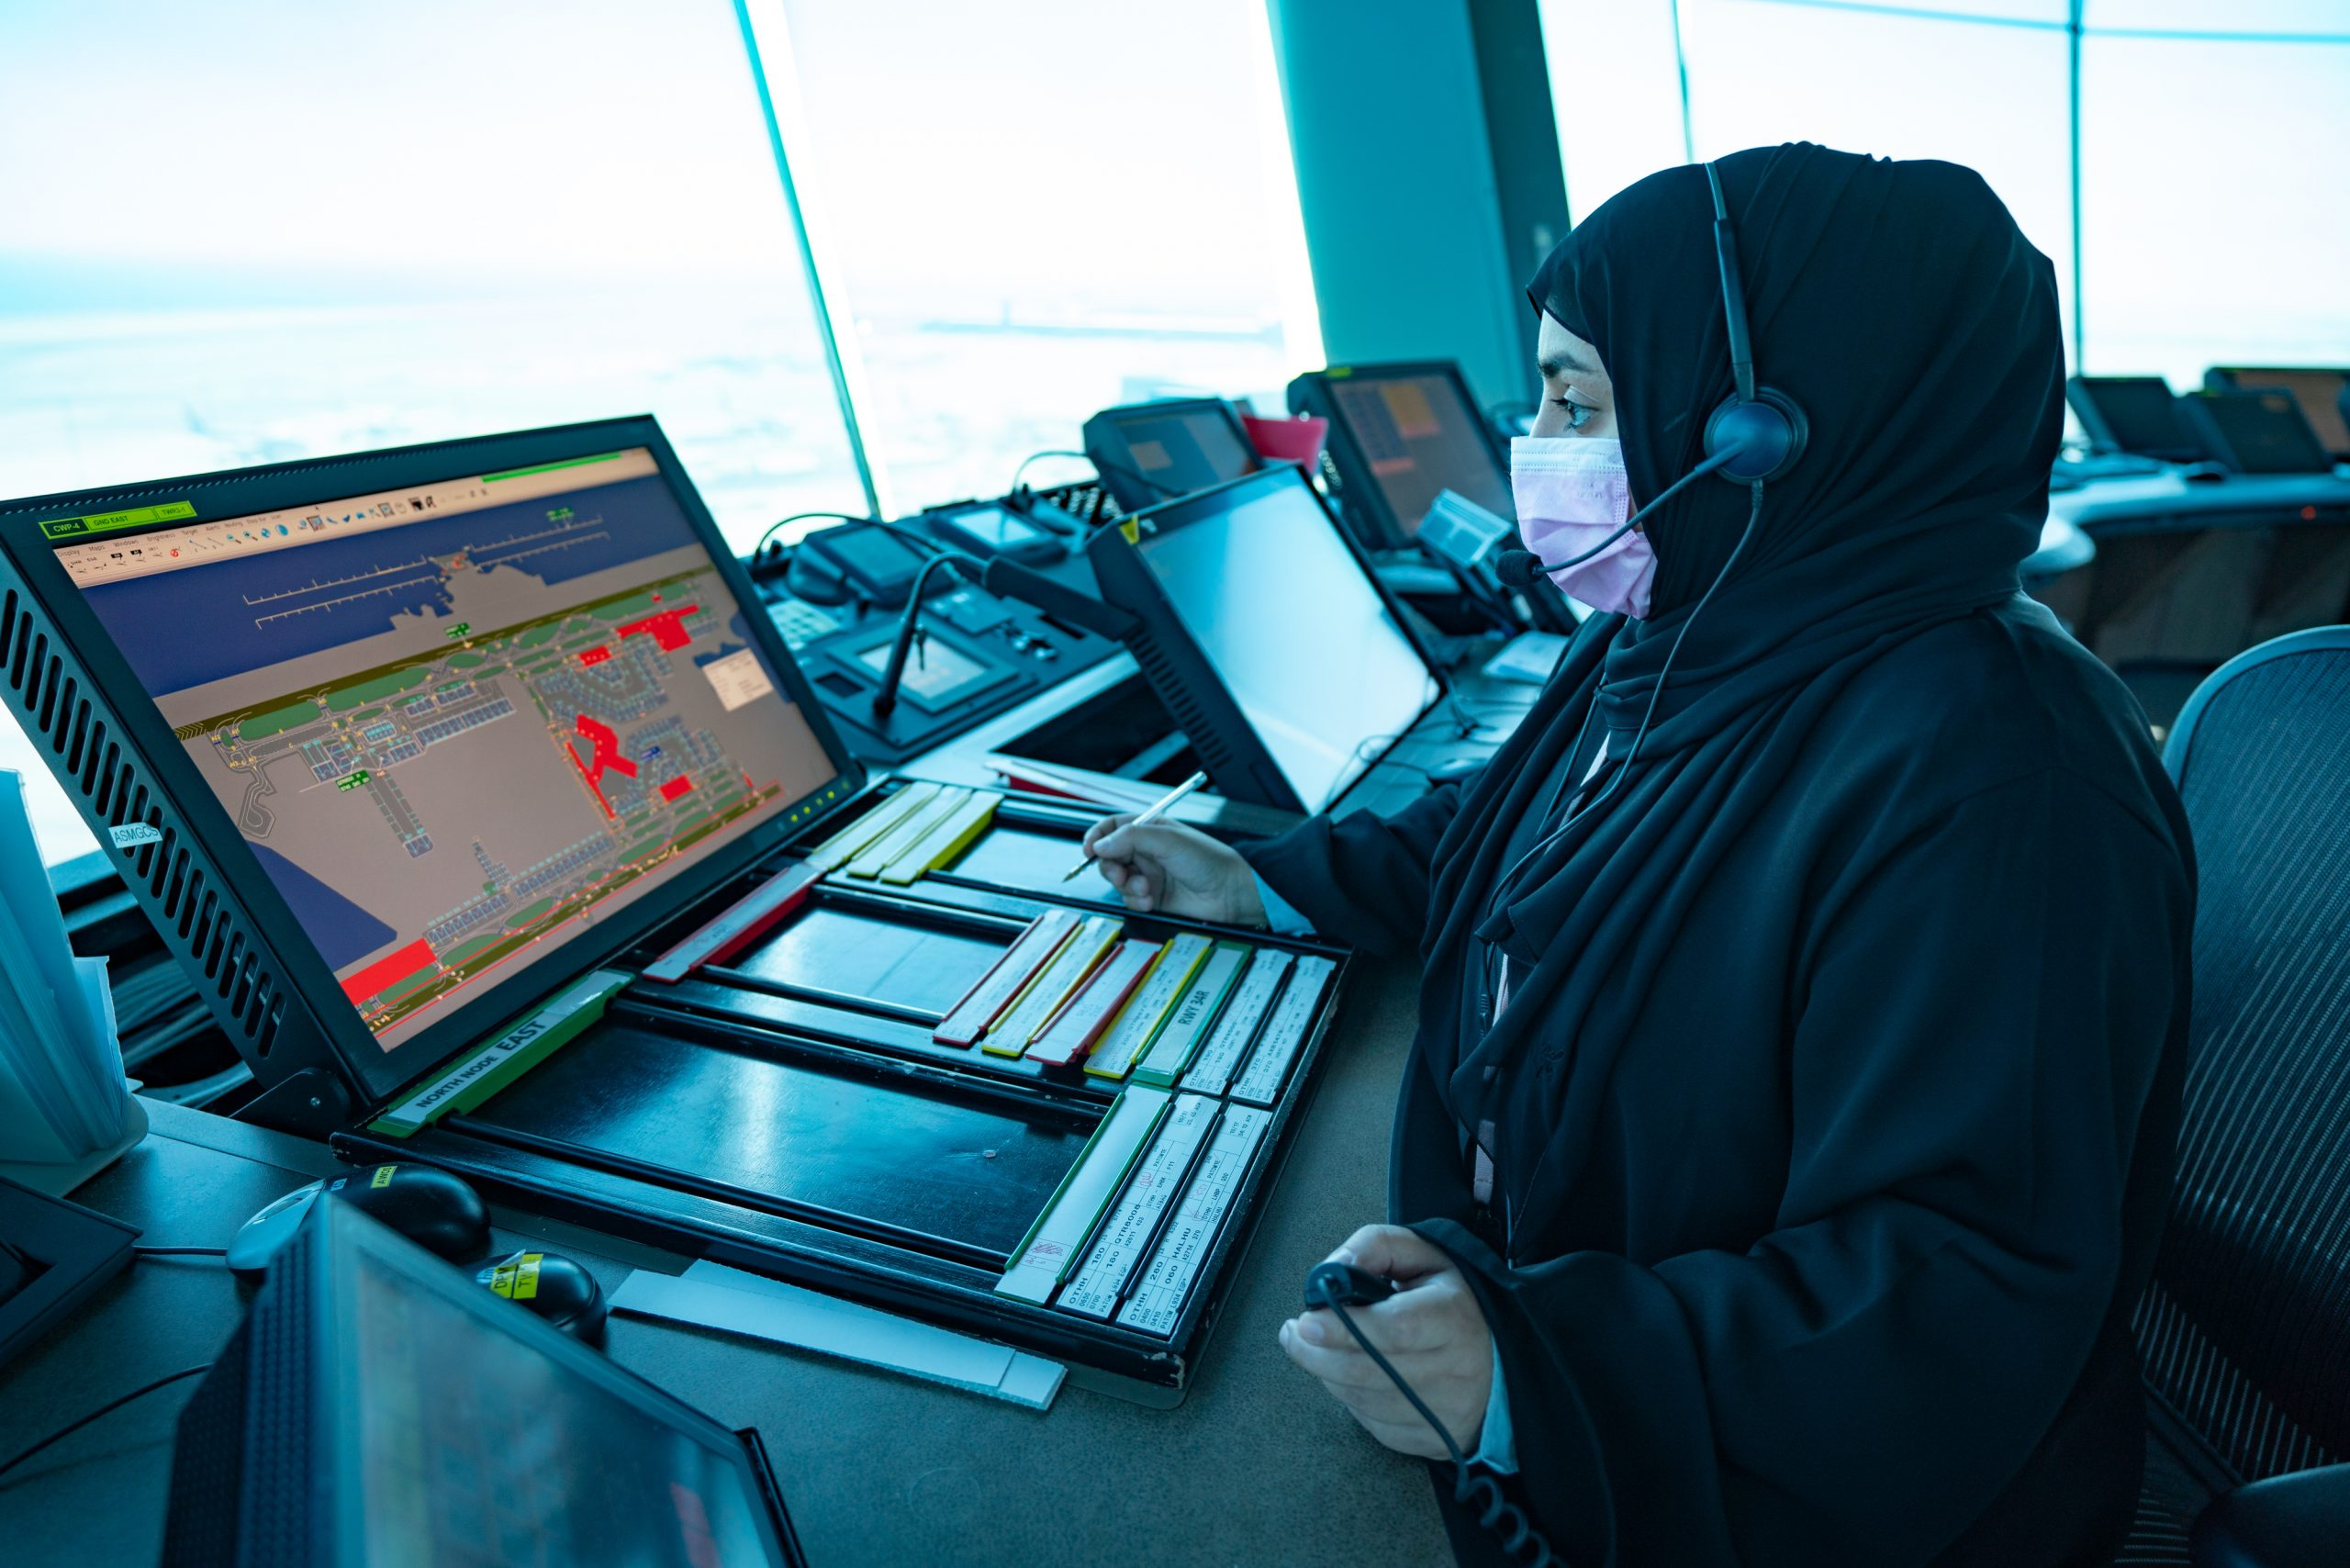 QA operates an exceptional flight with all female crew members